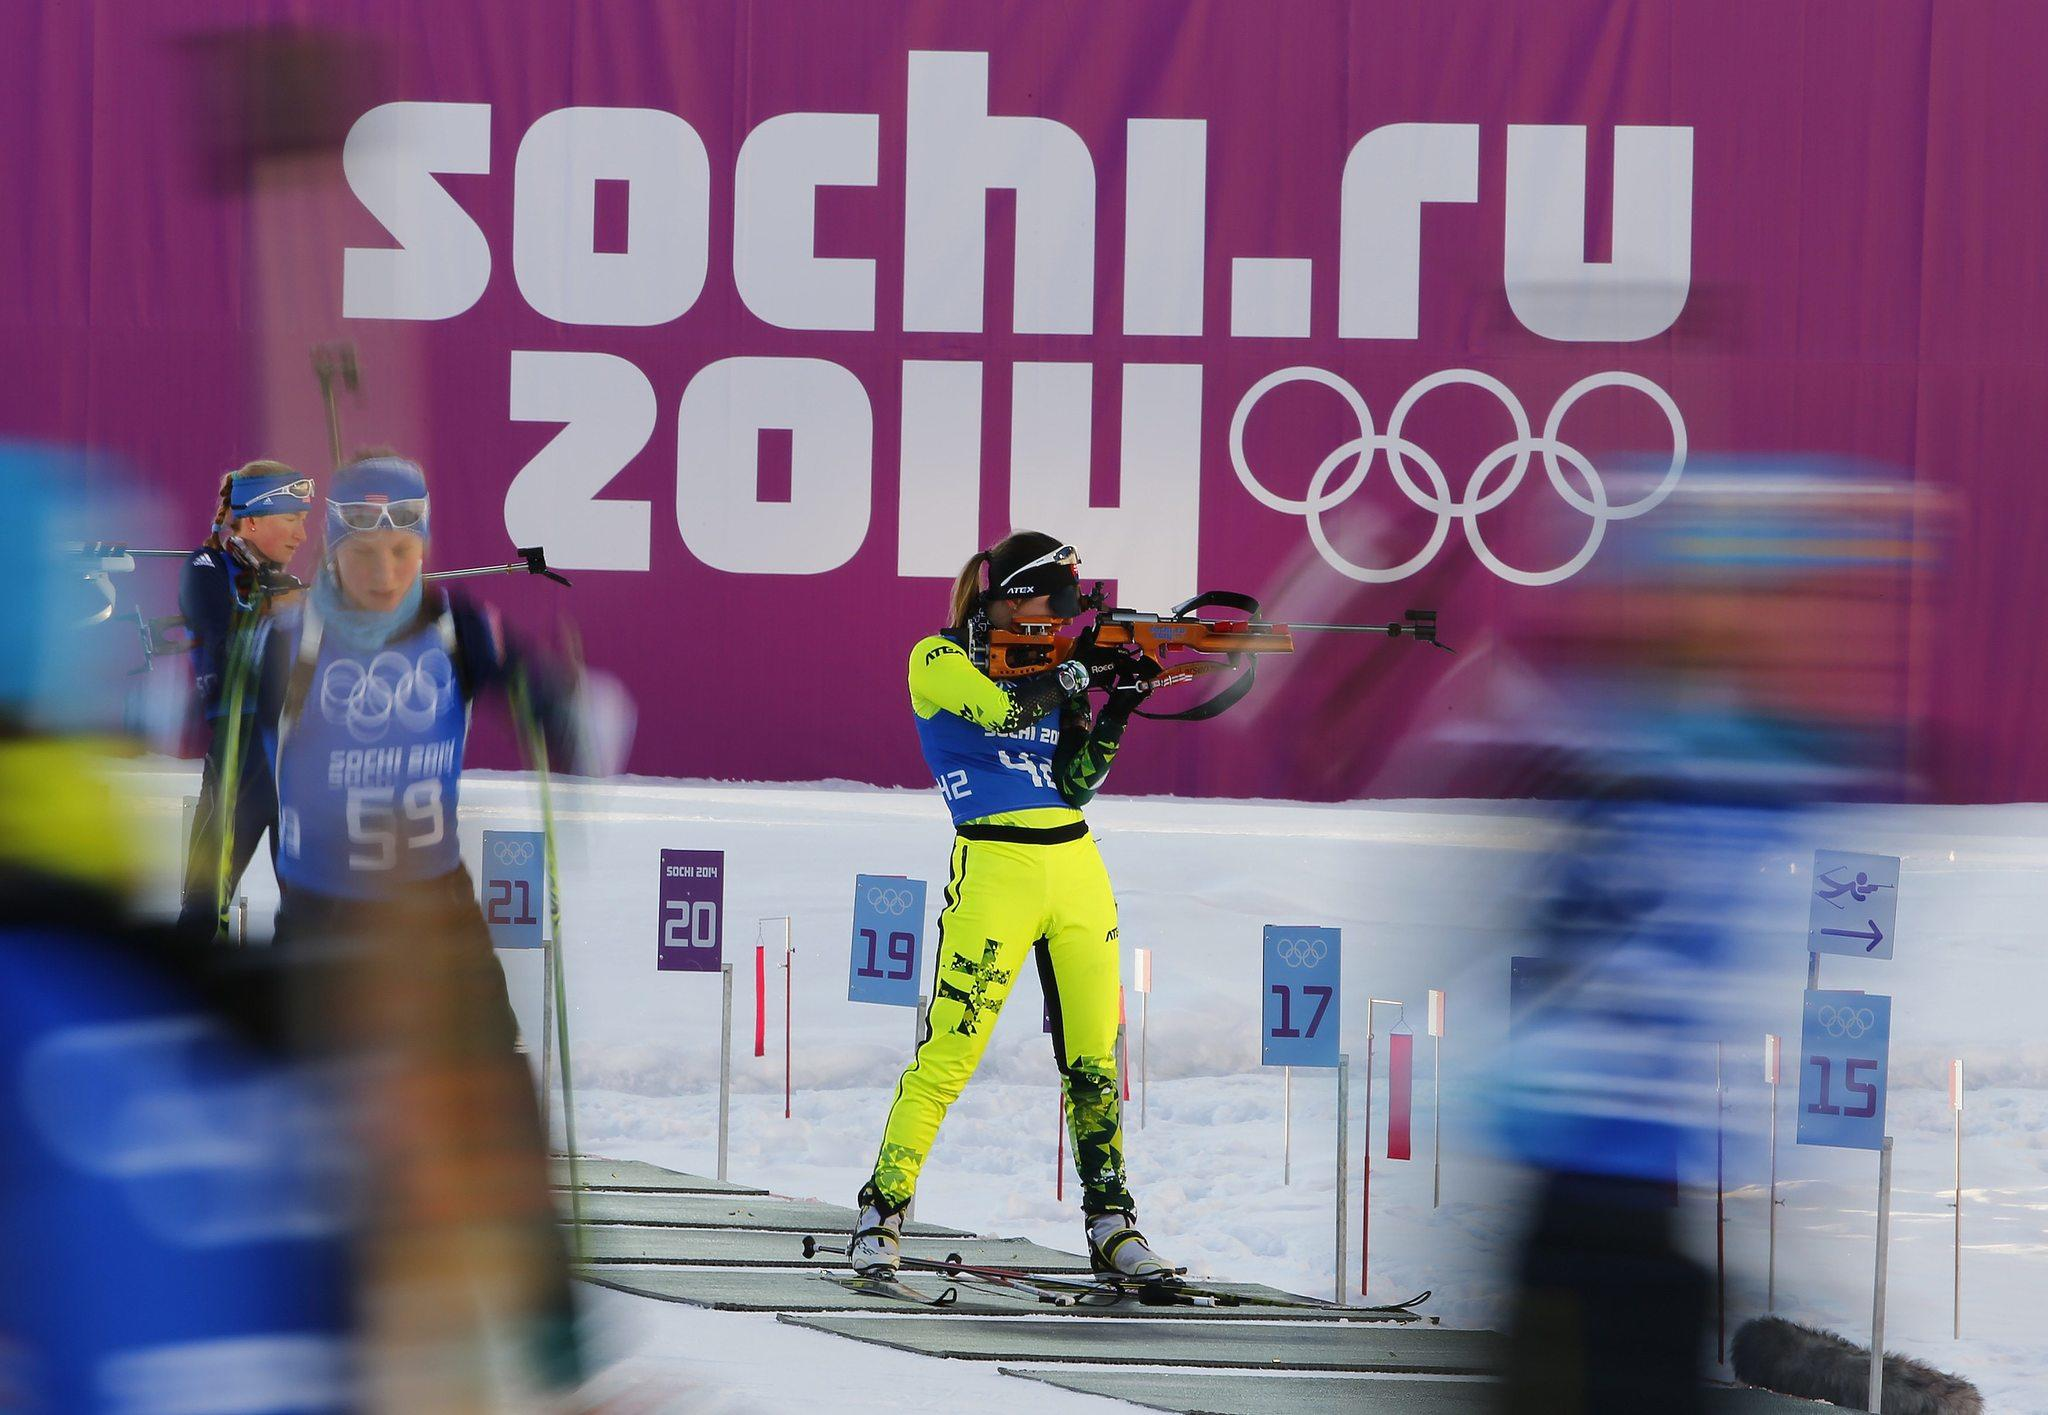 Martina Chrapanova of Slovakia takes part in a biathlon training session.